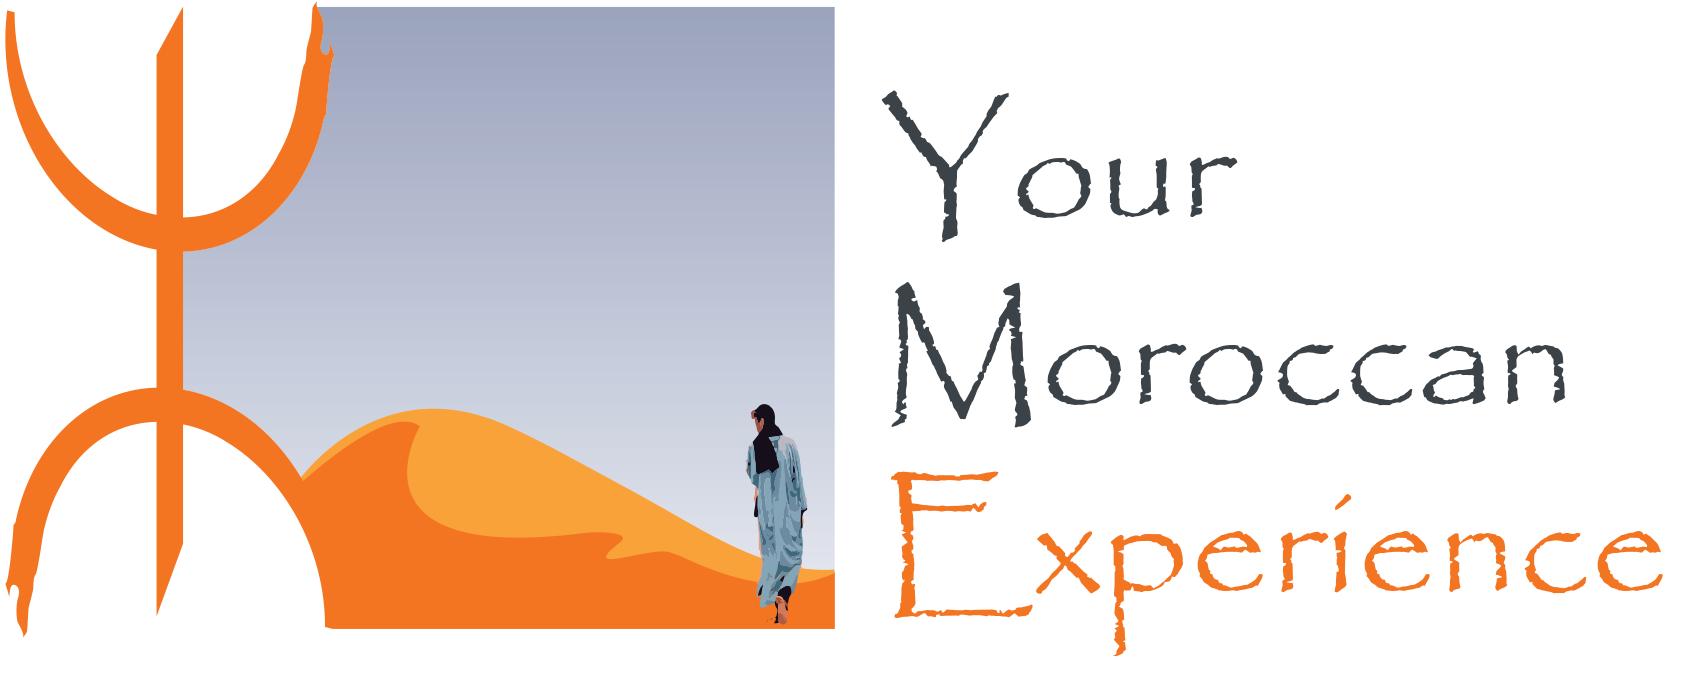 Your Moroccan Experience